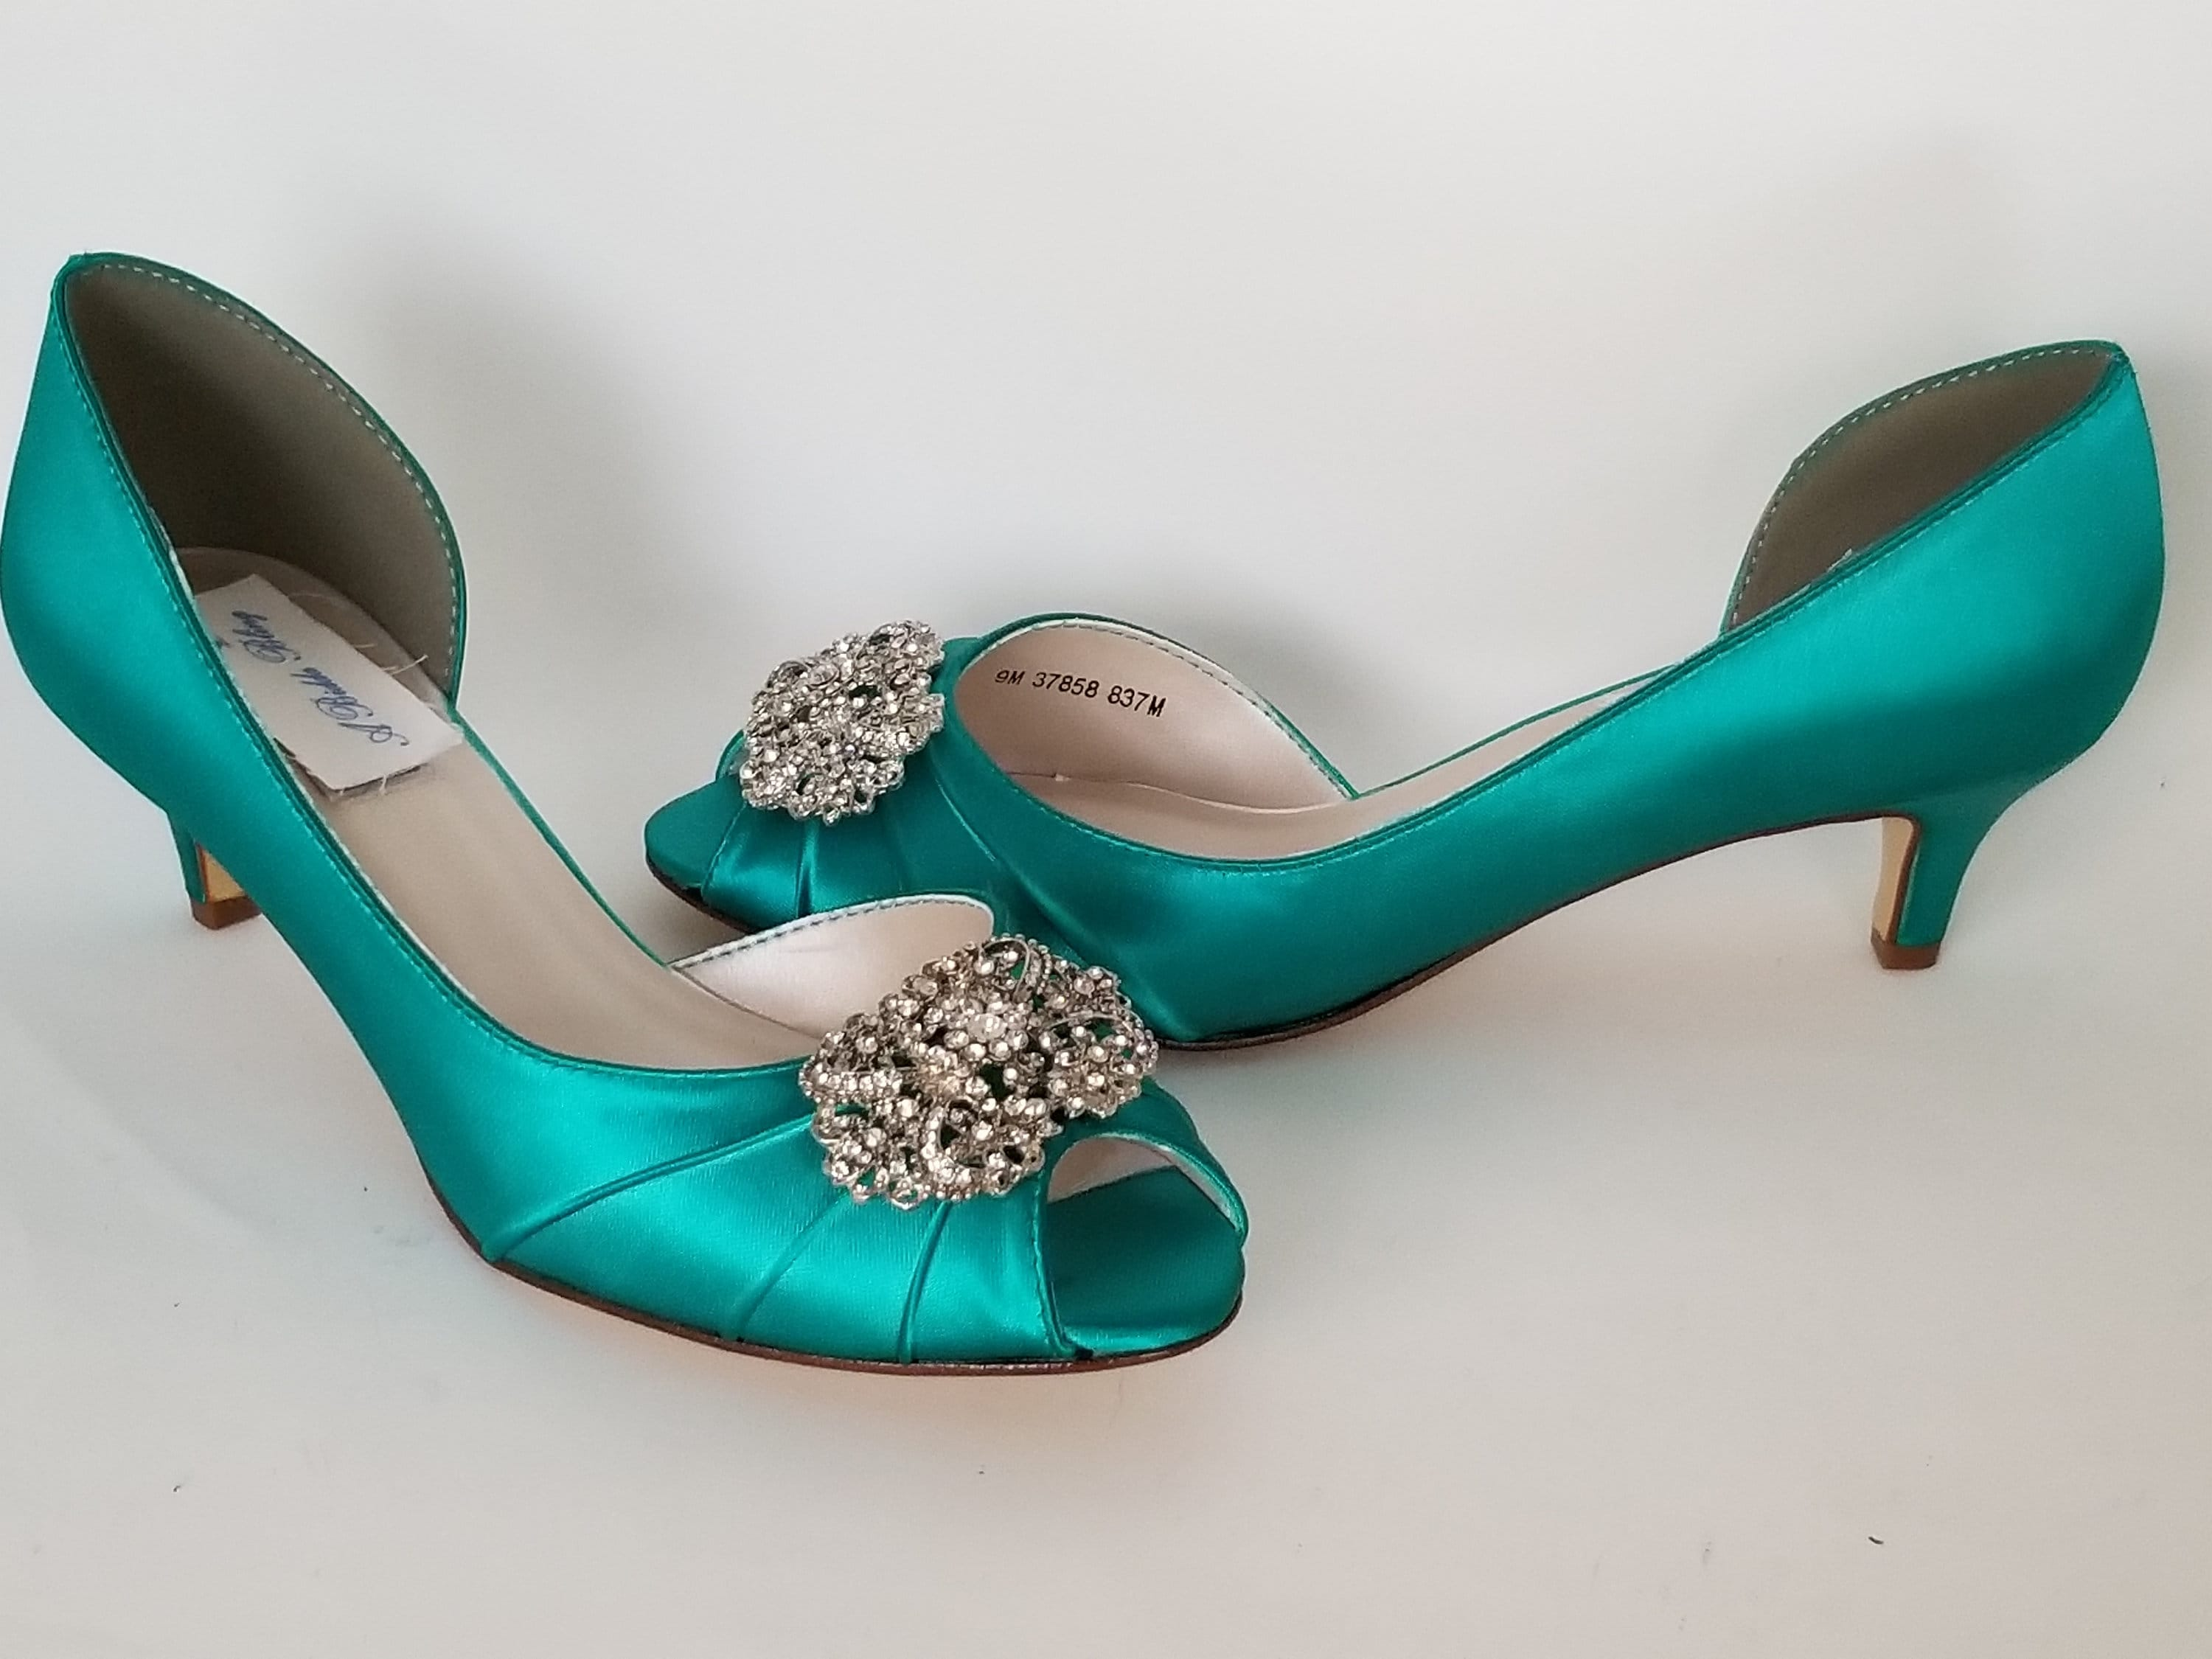 5ce70b9a9e46e Teal Bridal Shoes with Vintage Style Design Teal Wedding Shoes Teal  Bridesmaid Shoes PICK FROM 100 COLORS Different Heel Heights